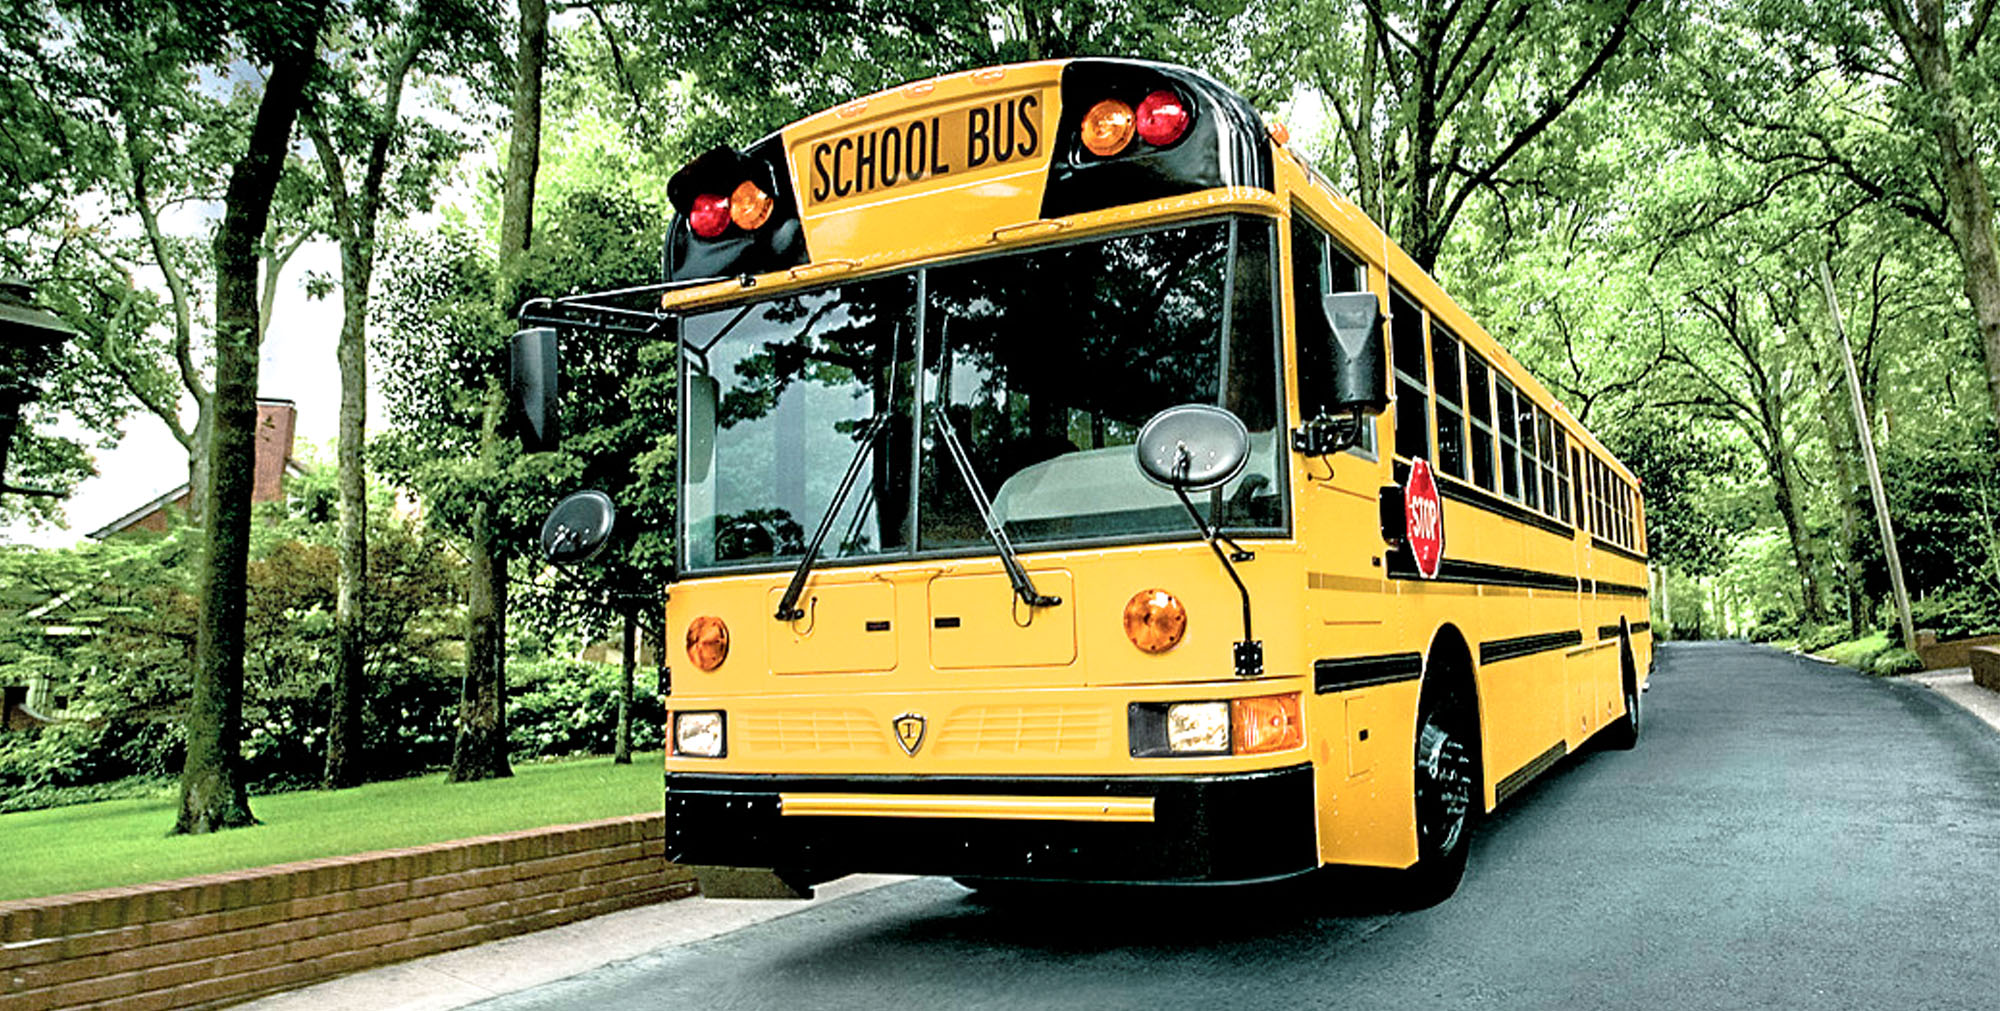 slideshow-schoolbus-type-d-re-in-neighborhood.jpg